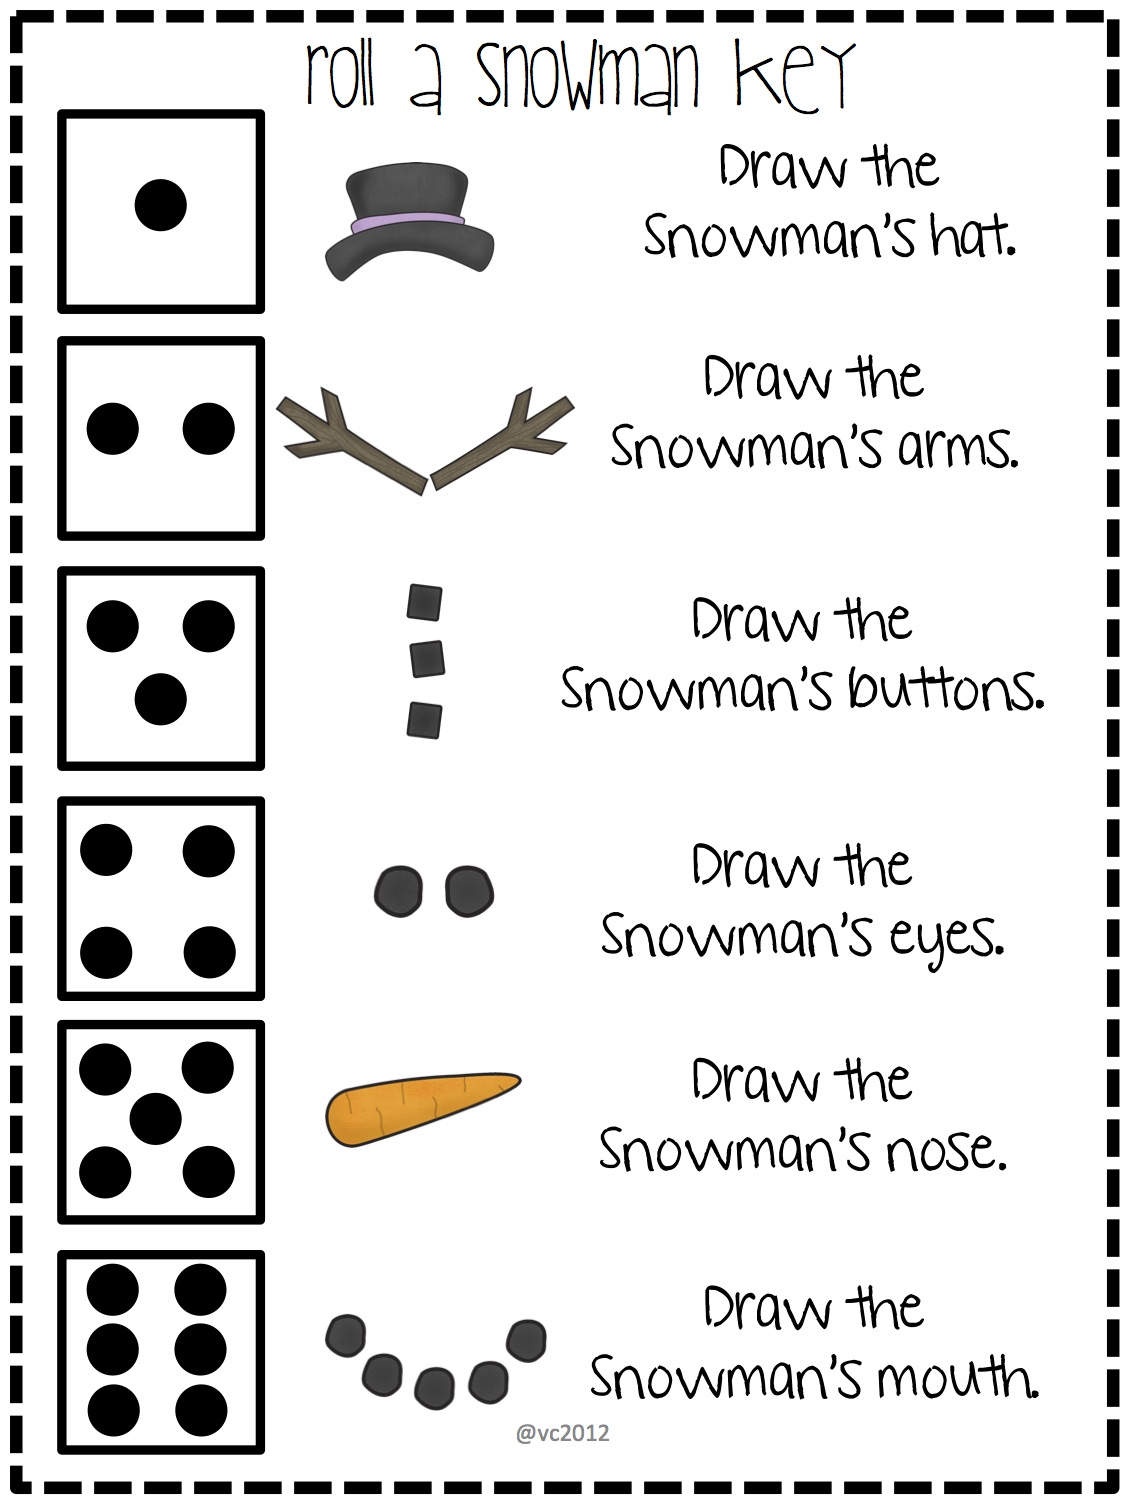 camille u0027s primary ideas roll a snowman review